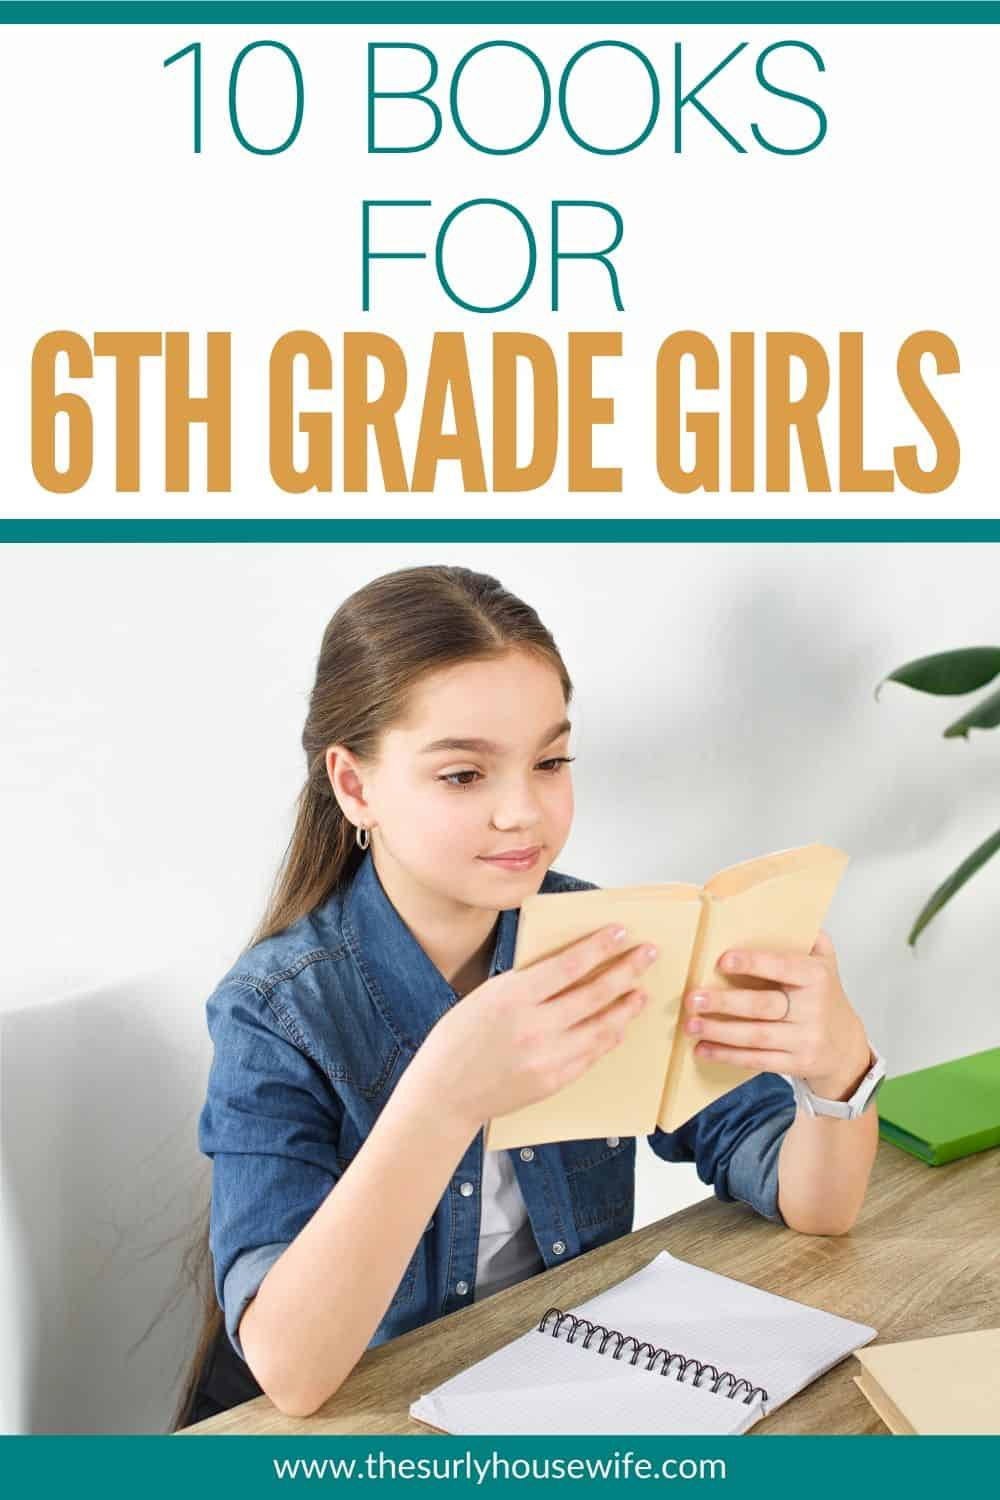 Searching for book suggestions for 6th grade girls? Click here for a simple list of 10 books that all sixth grade girls will adore! Encourage your young reader with 10 of these eclectic book selections for 12 year old girls! Don't miss this list which contains some of the best books for girls. They include chapter books, fantasy, classics, realistic fiction, and historical fiction. They are perfect for reading aloud, independent reading, or a summer reading list!